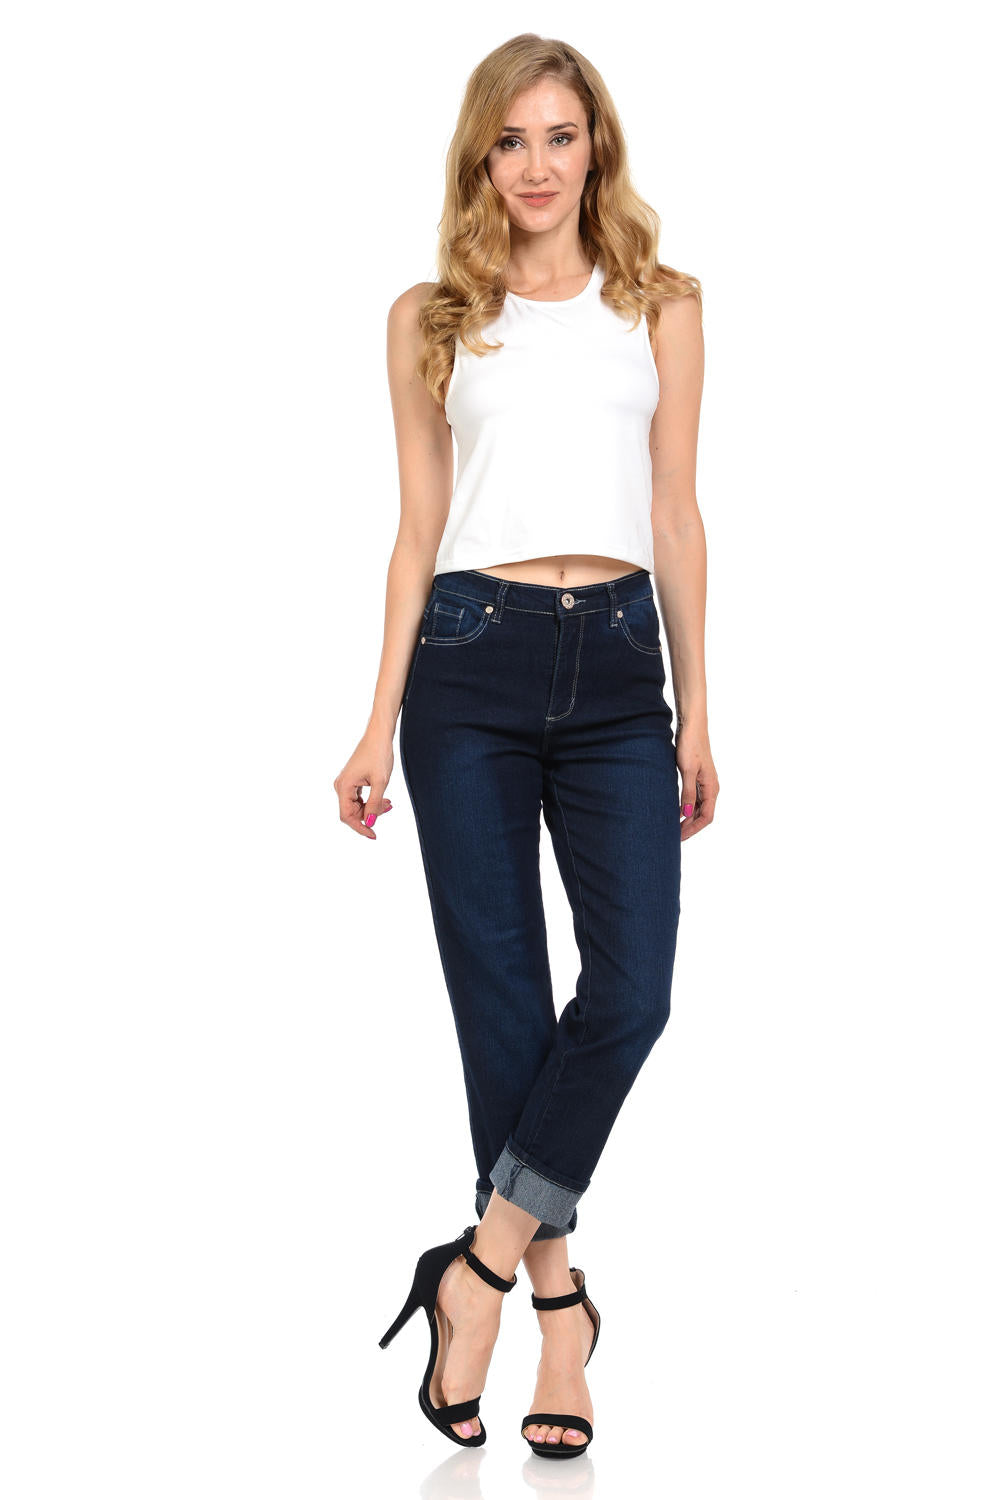 Studio Omega Women's Jeans - Push Up - Style 925